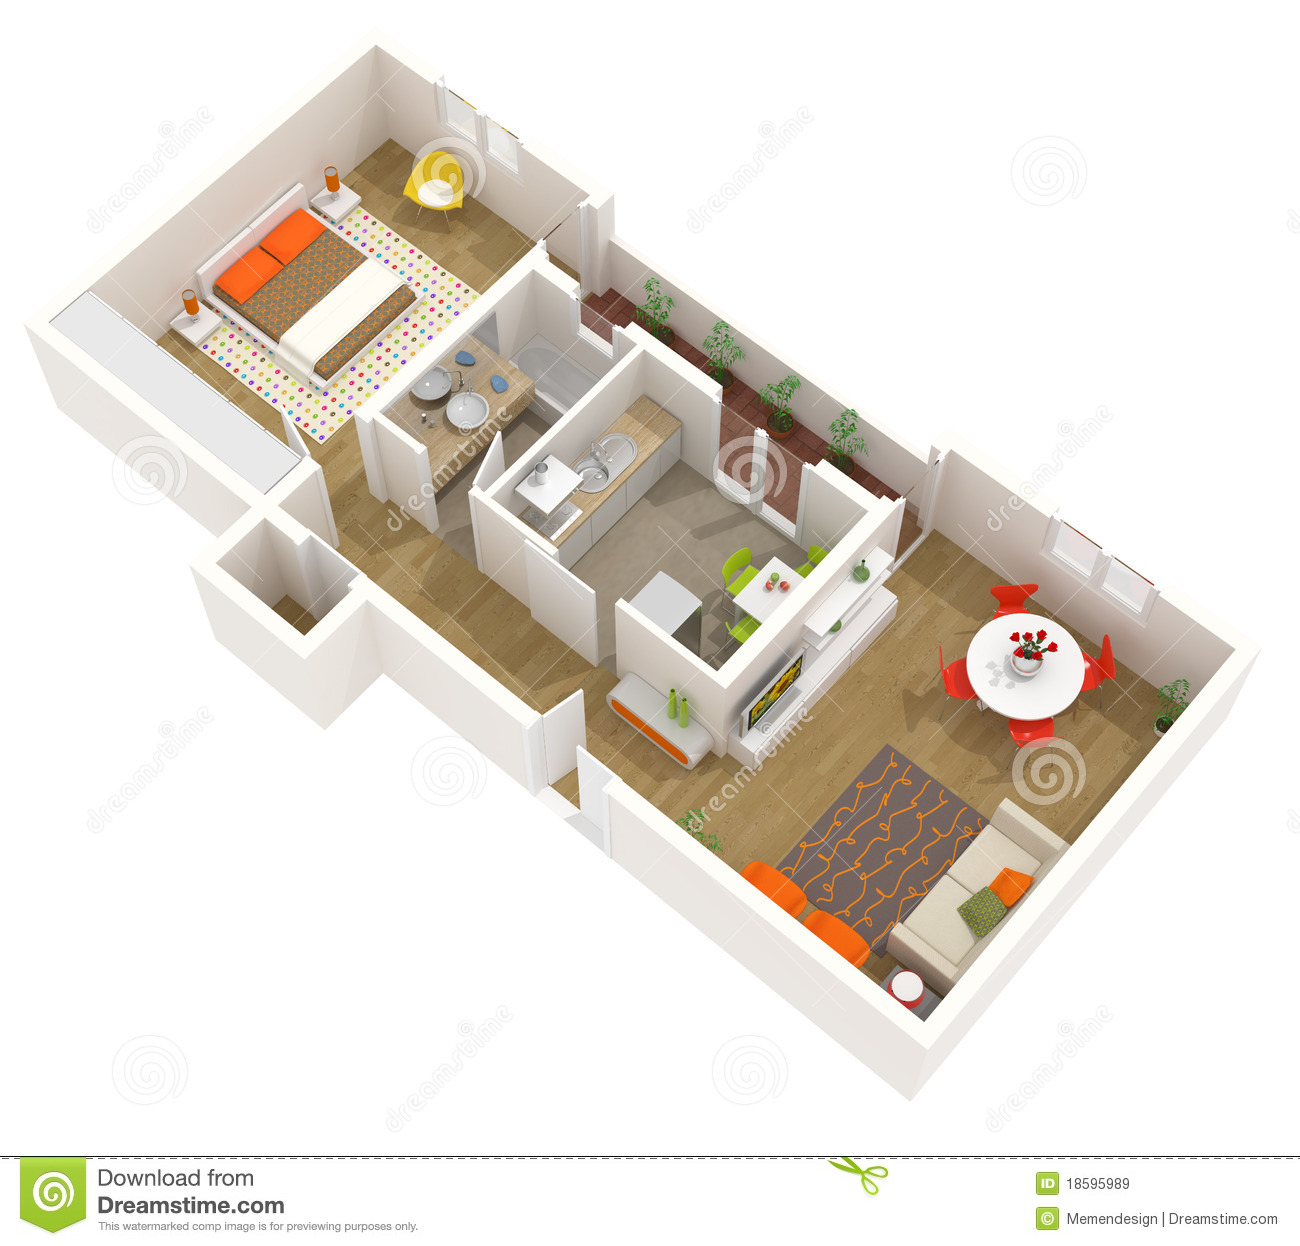 Apartment interior design 3d floor plan stock for 3d apartment design